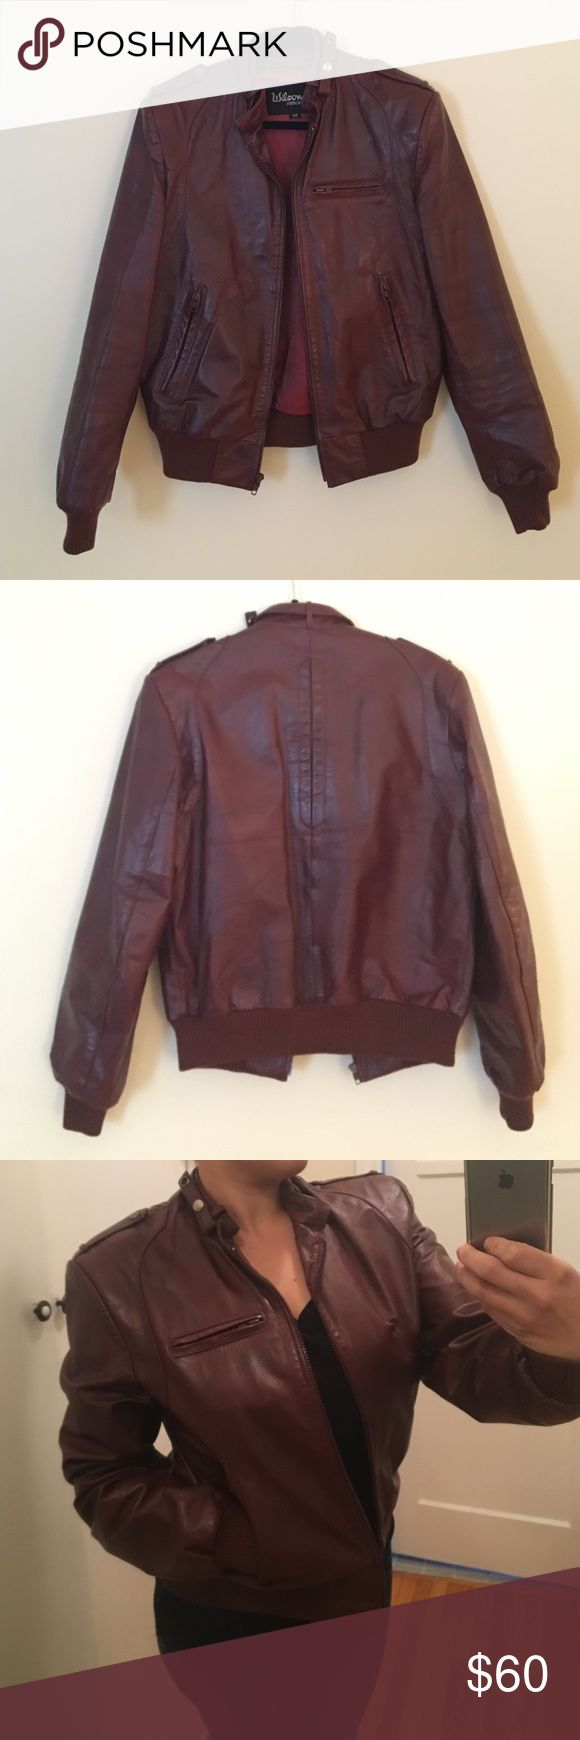 WILSONS SUEDE & LEATHER, Wine Red Leather Jacket Fits like a large but it has a size 40 tag and I believe this is MENS. I purchase from a consignment store a while back. Wilsons Leather Jackets & Coats